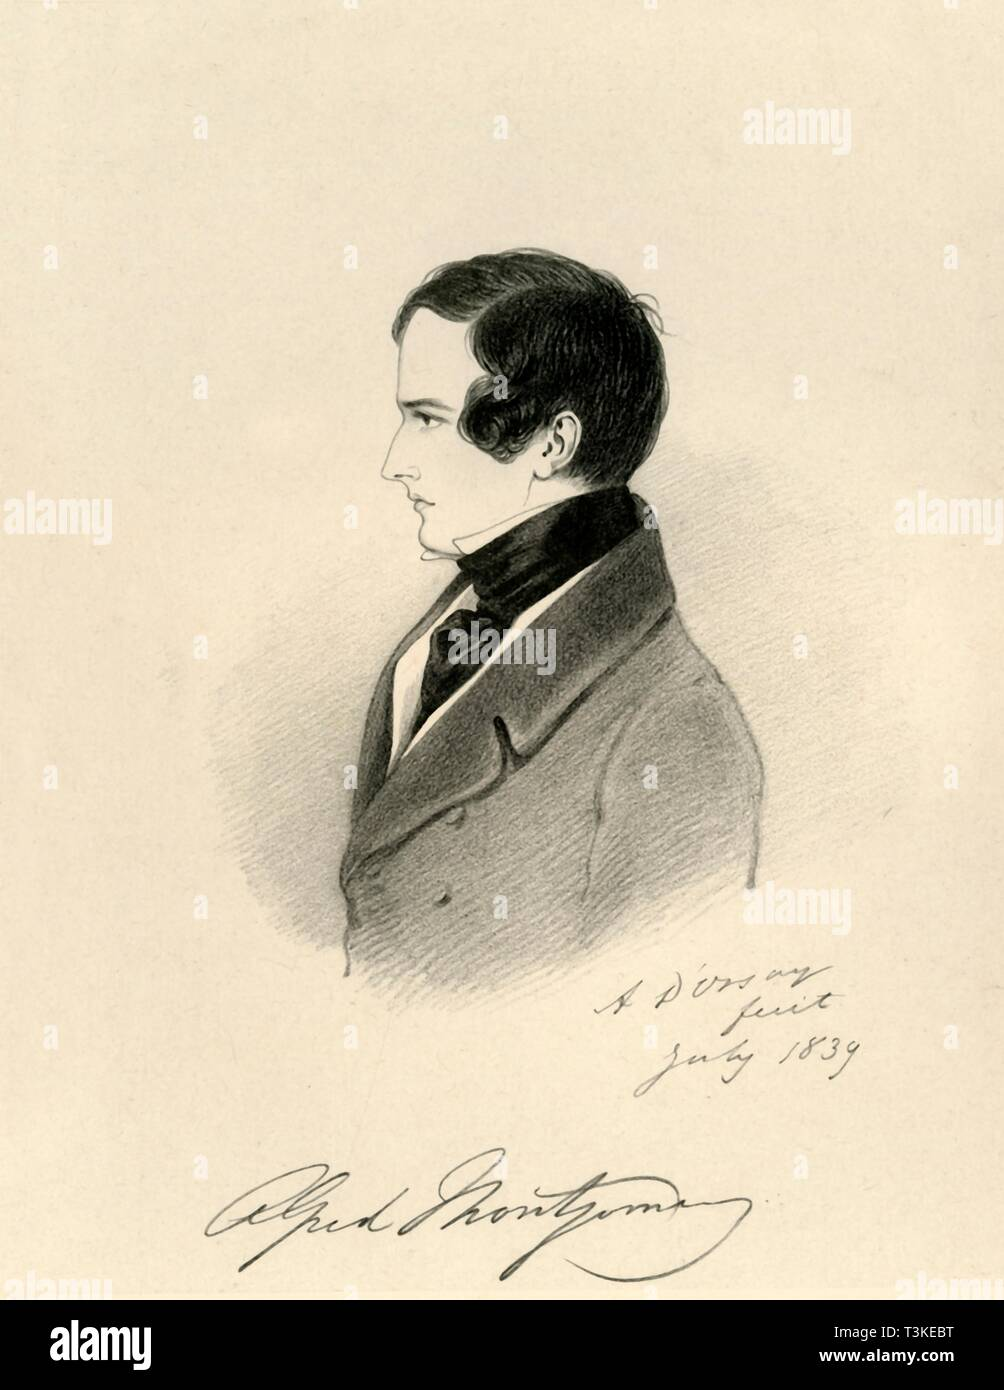 """'Alfred Montgomery', 1839. Portrait of Alfred Montgomery (1814-1896), British Commissioner for Inland Revenue. From """"Portraits by Count D'Orsay"""", an album assembled by Lady Georgiana Codrington. [1850s] Stock Photo"""